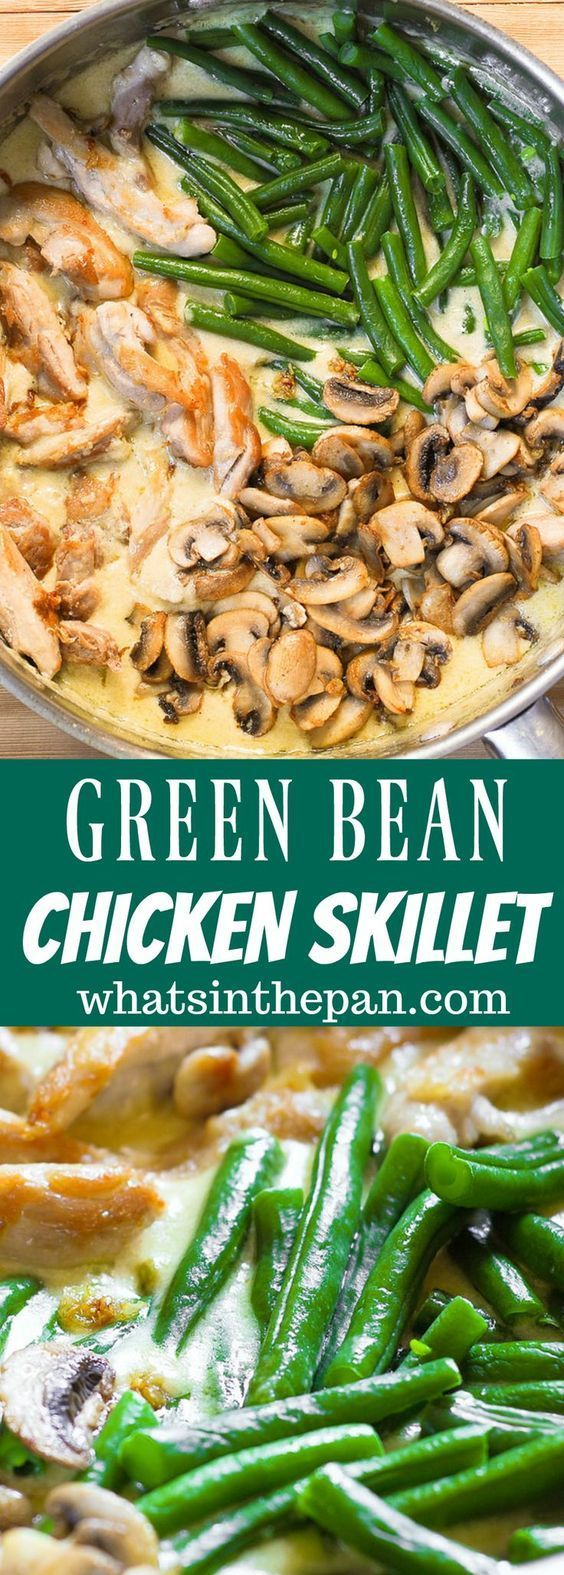 green beans mushroom skillet with chicken in creamy sauce images